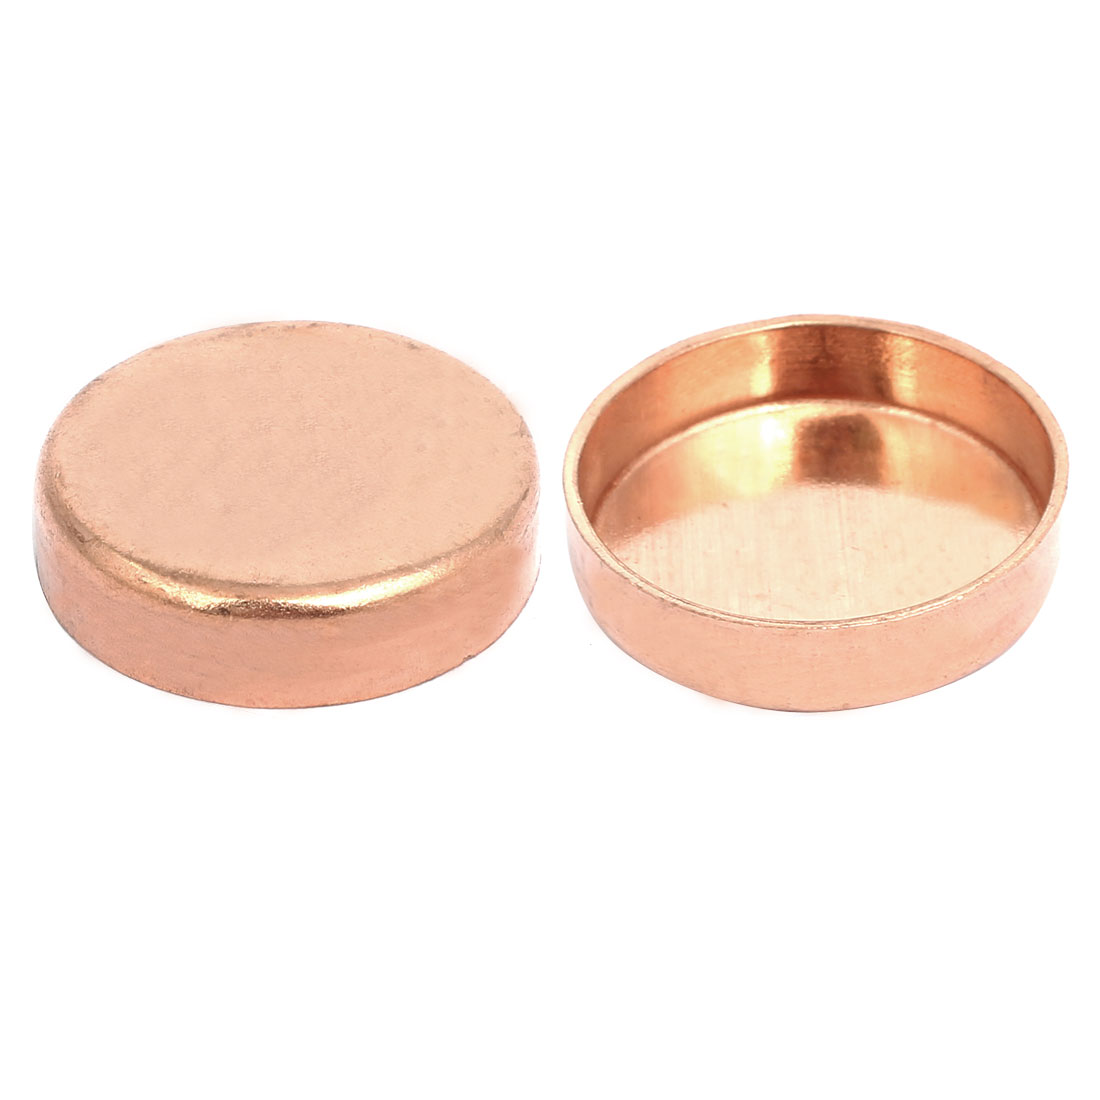 32mm Inner Dia 1.5mm Thickness Copper Tube End Cap Cover Plumbing Fitting 2pcs